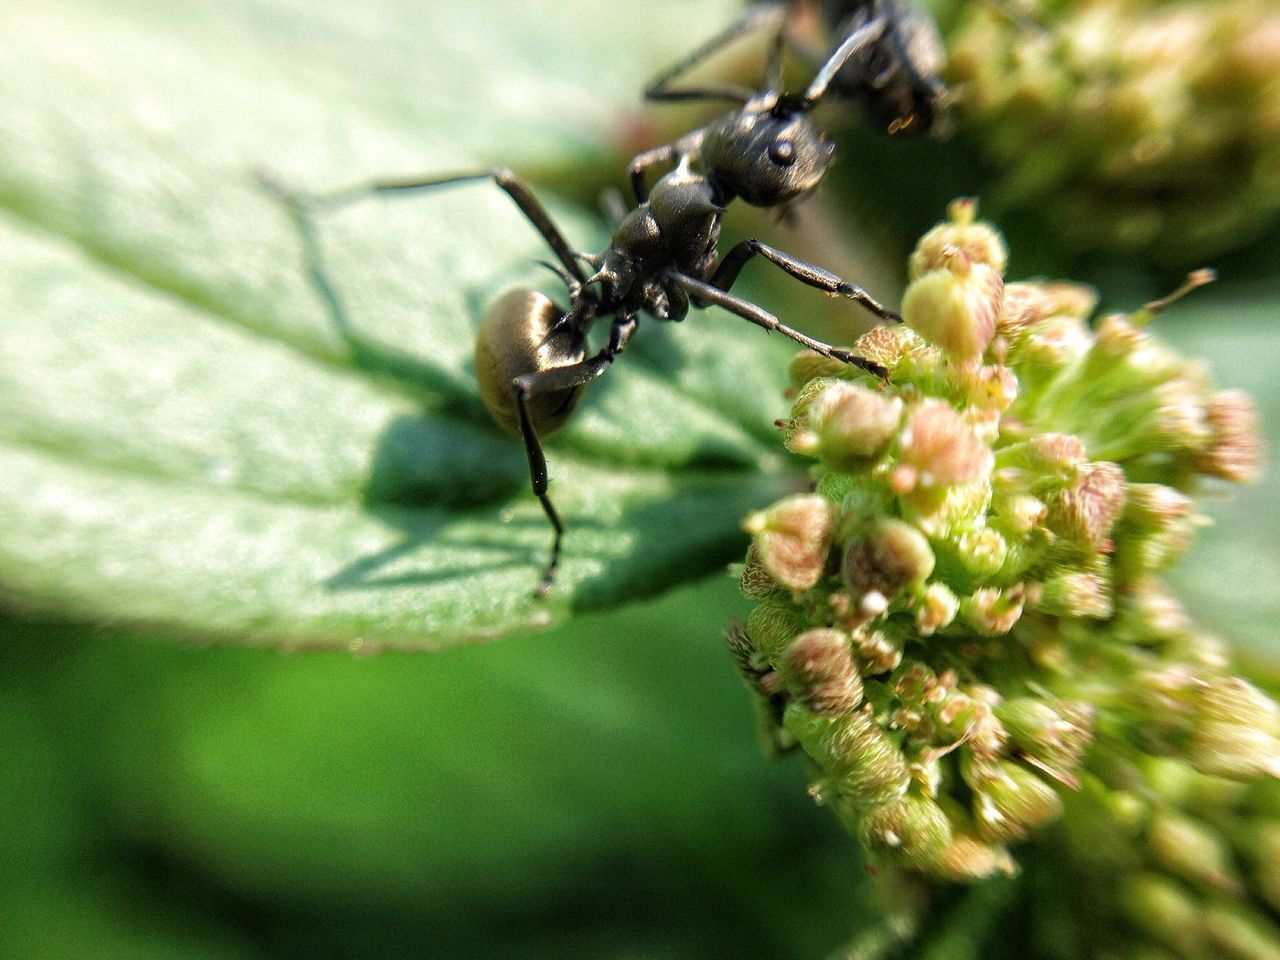 Black ant Black Ant Insect Animal Themes Close-up Nature Animals In The Wild No People Leaf Outdoors Day Macro Macro Photography Semut Hitam Semut